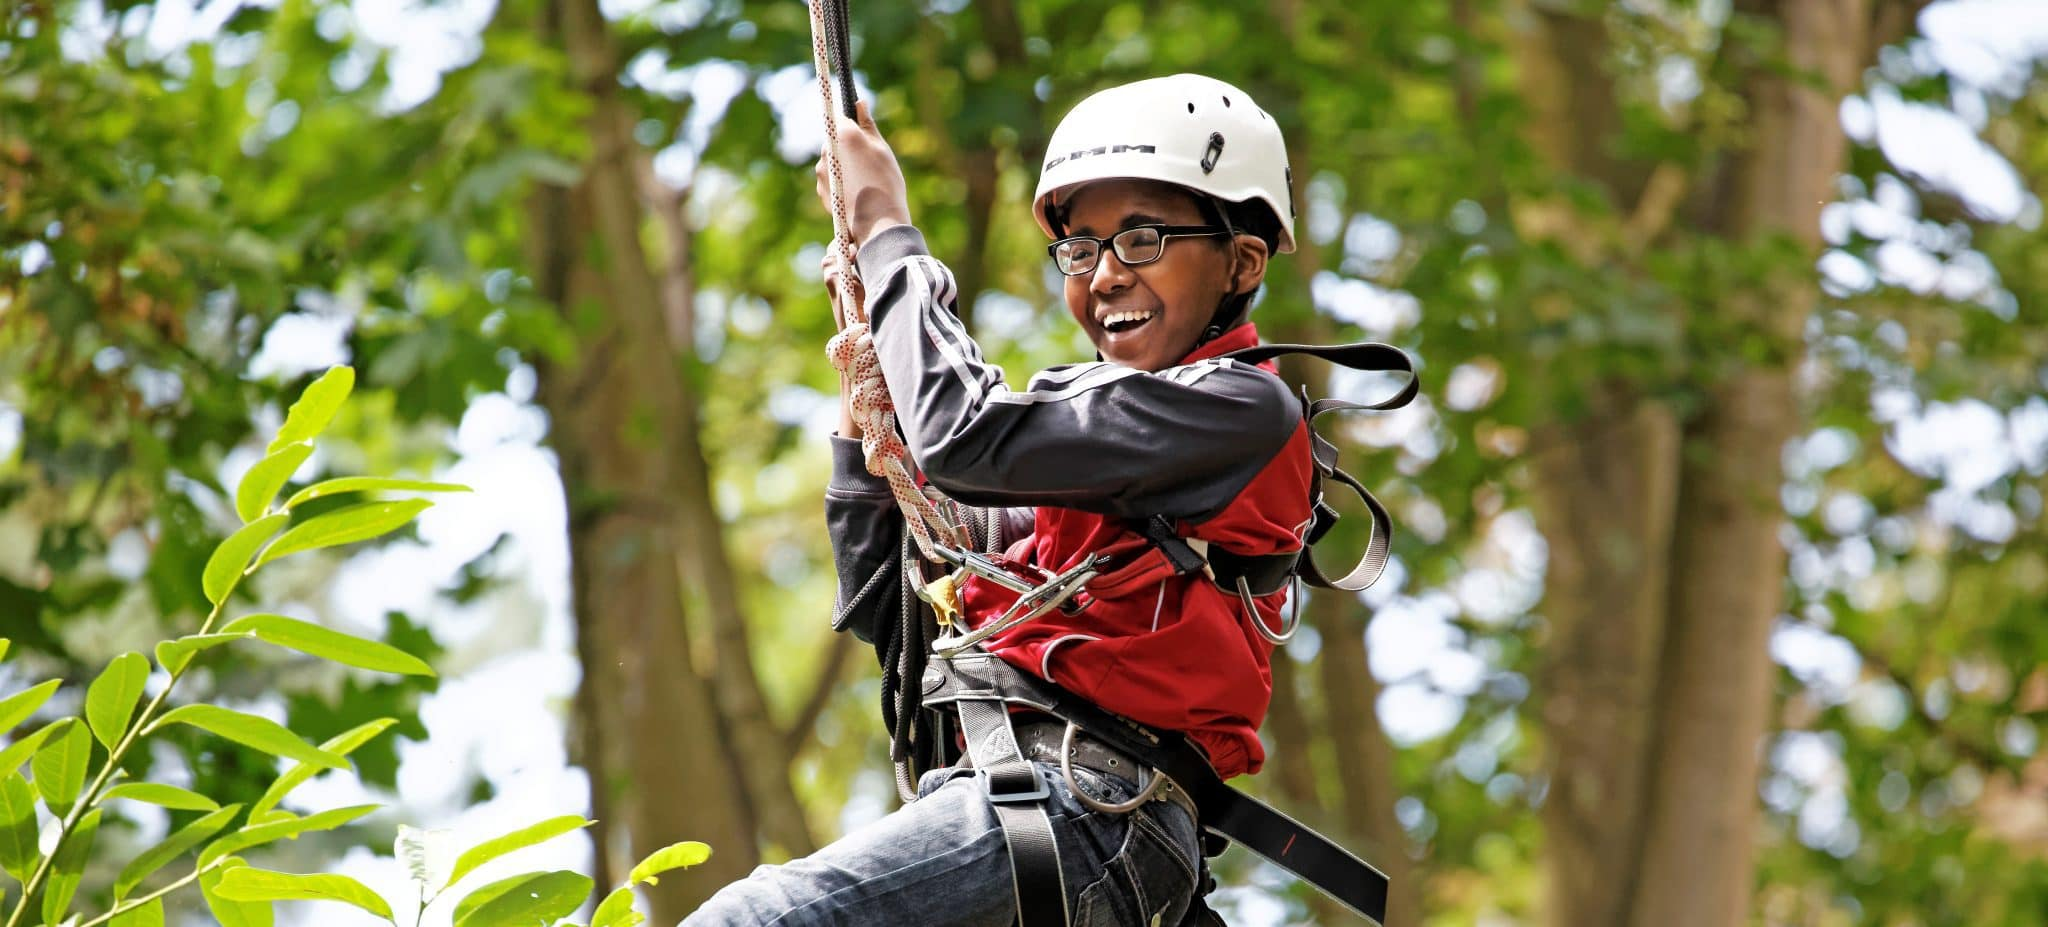 Xplore Language Activities Zip Line